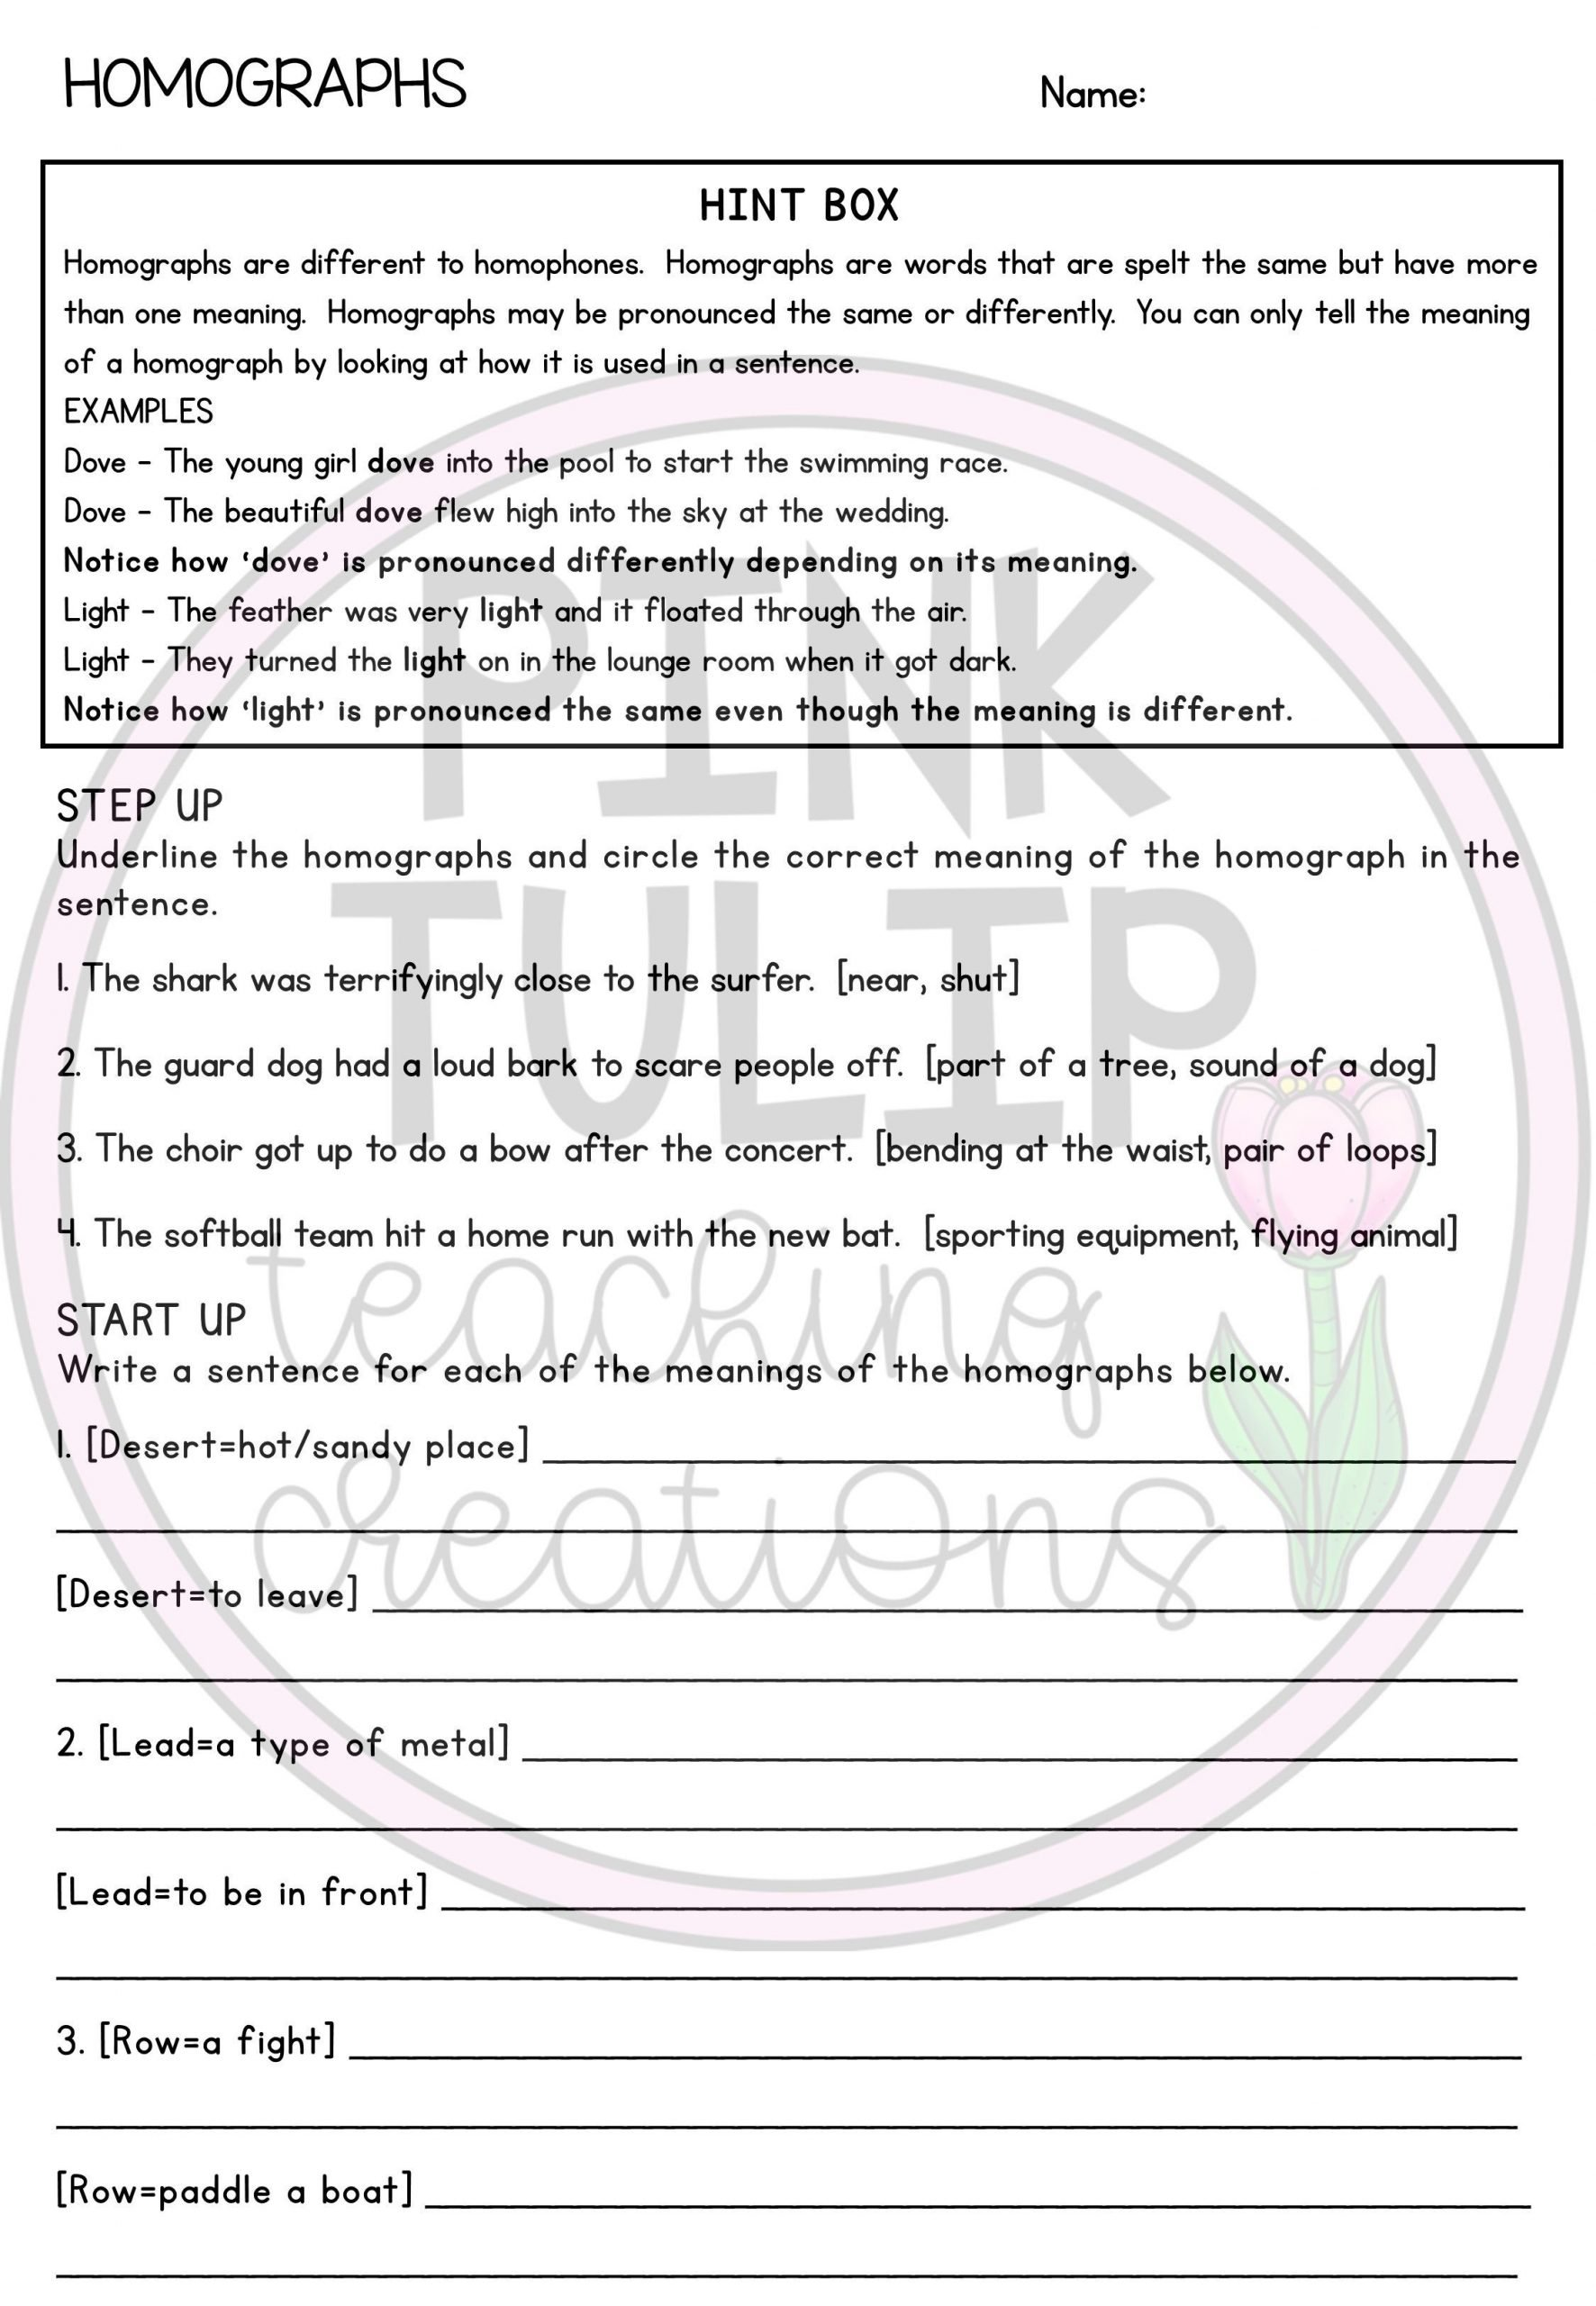 Homographs and Homophones Worksheets Homophones and Homographs Grammar Worksheets with Answers